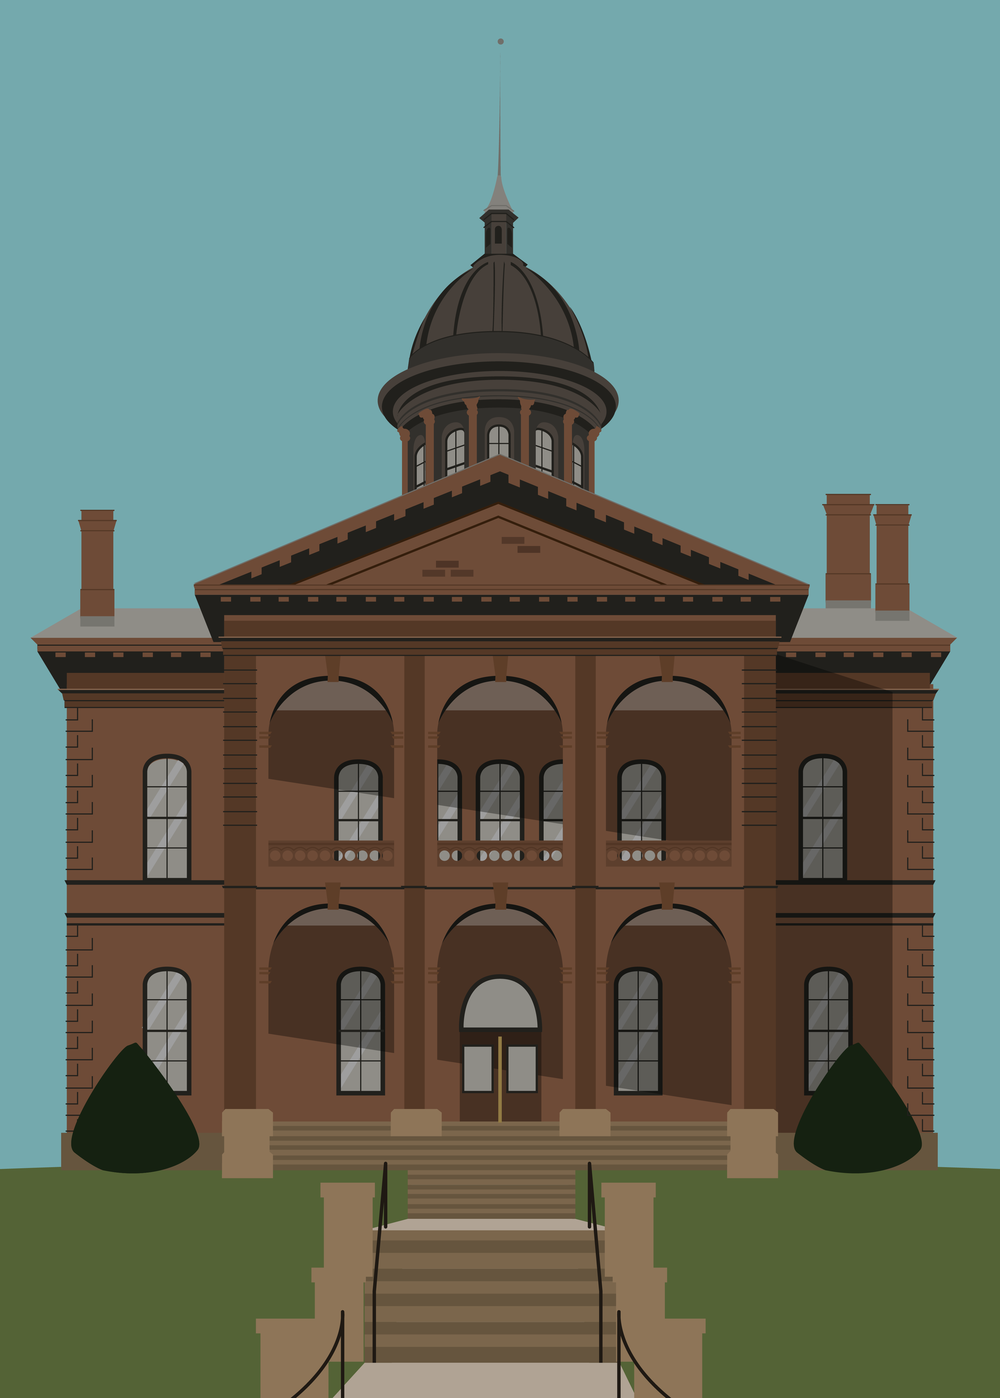 Courthouse-01.png